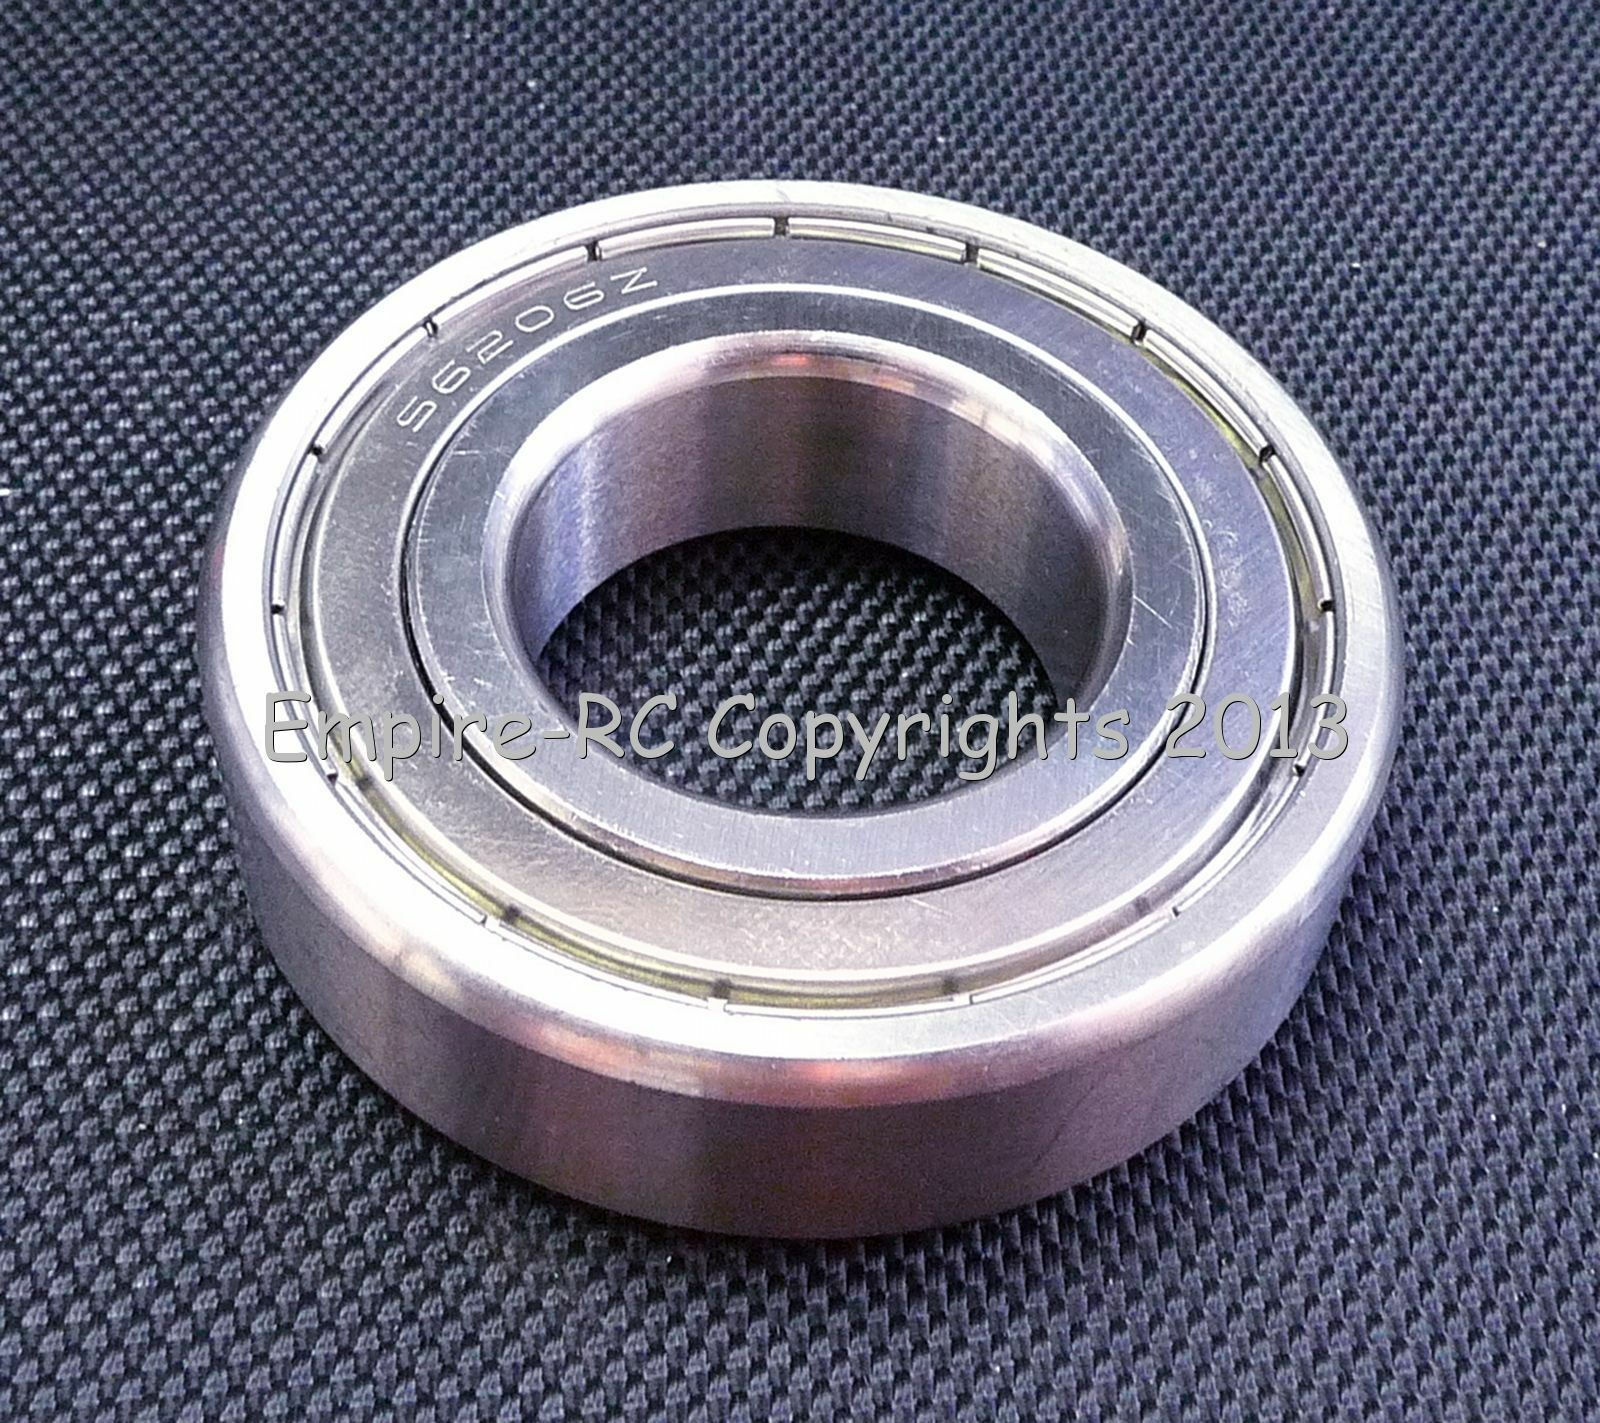 10 PCS 440c Stainless Stainless Stainless Steel Shielded Ball Bearing (S6300ZZ 6300ZZ) (10x35x11 mm) ce5999